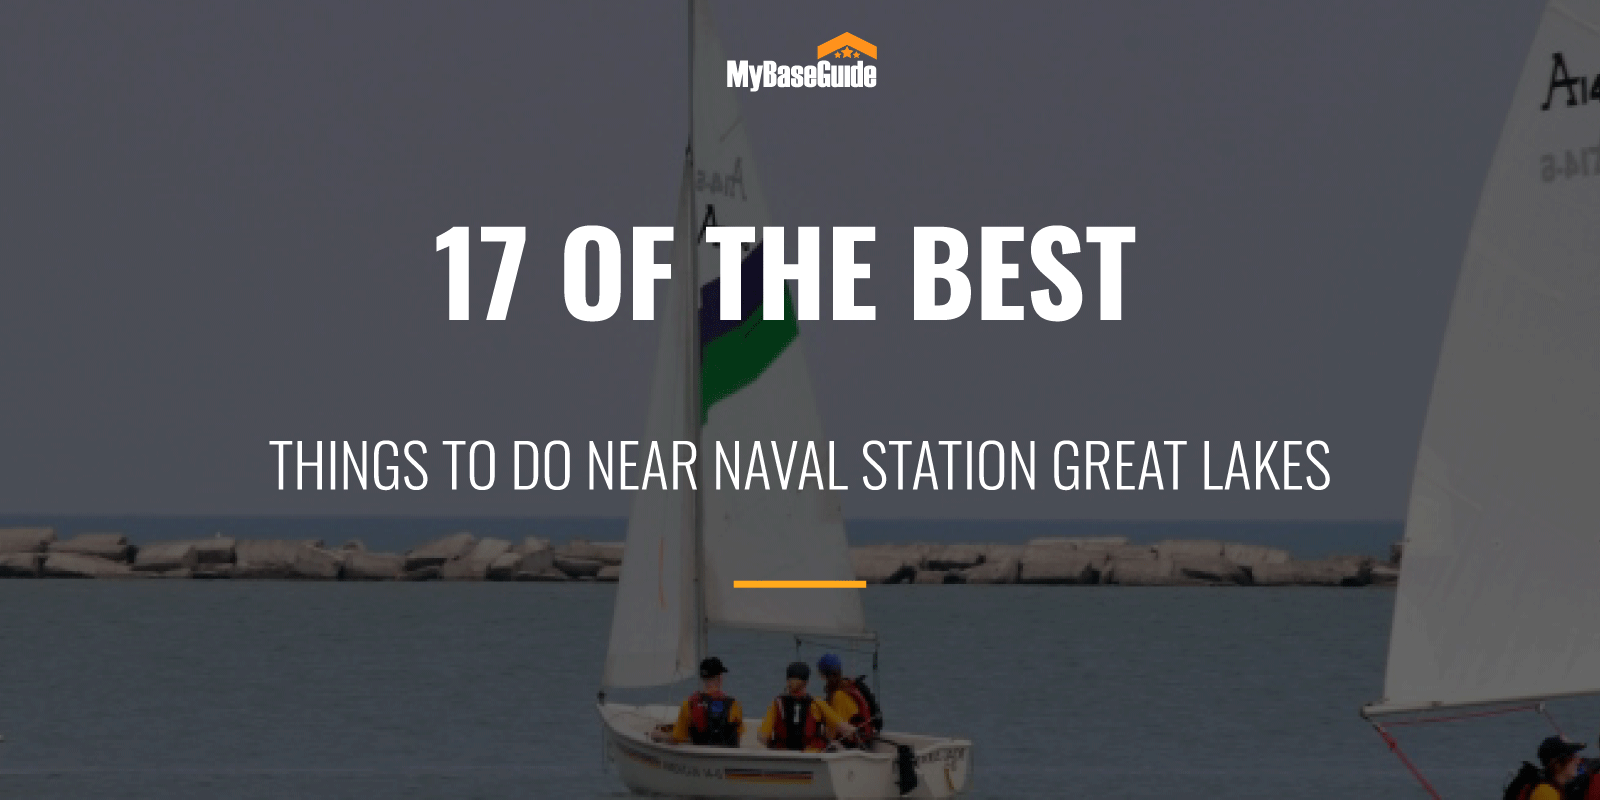 17 of the Best Things To Do Near Naval Station Great Lakes